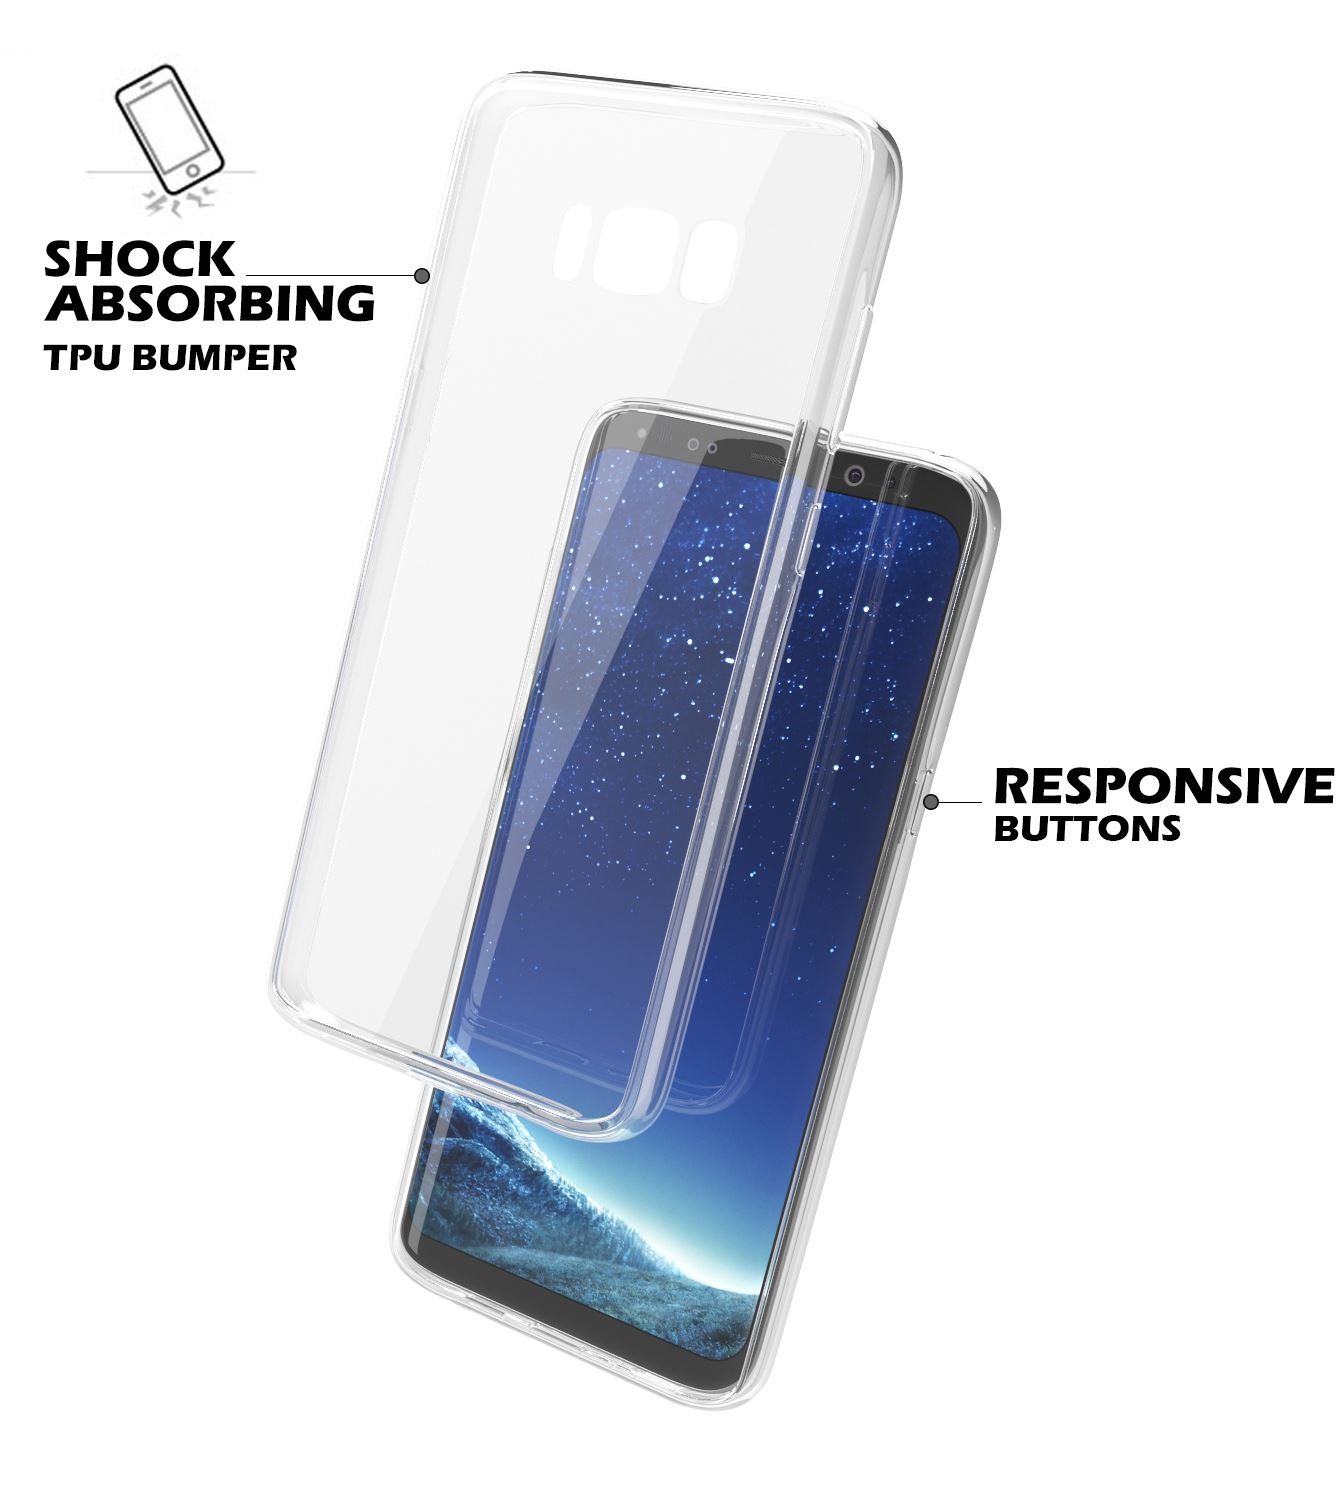 Samsung-Galaxy-S8-S9-Note-8-Shockproof-TPU-Bumper-Gel-Crystal-Clear-Case-Cover 縮圖 9